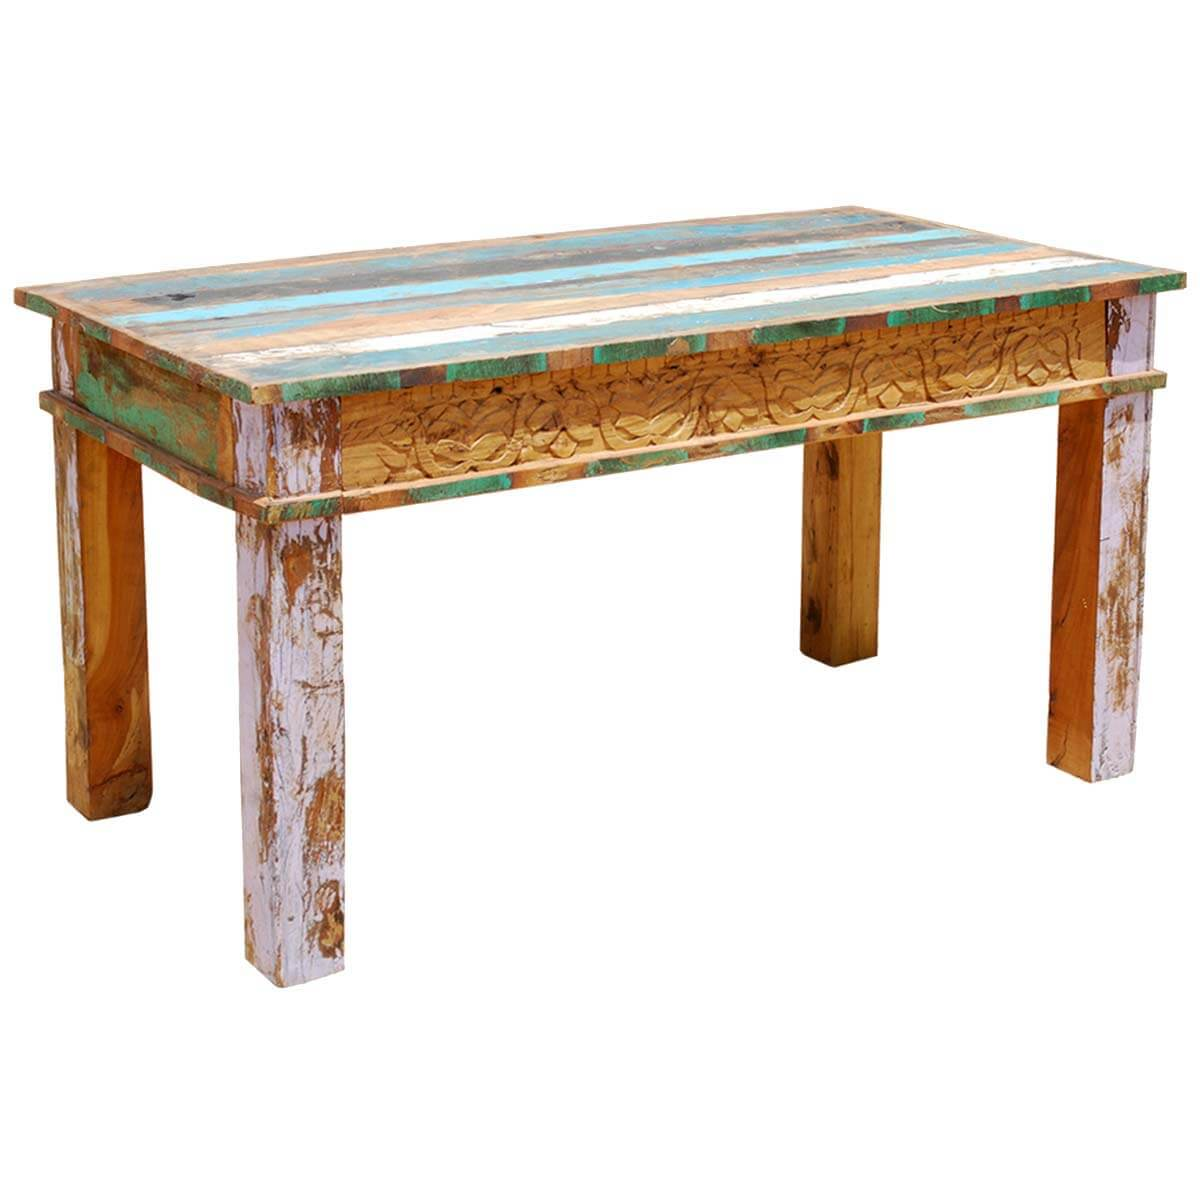 Reclaimed Wood Table ~ Reclaimed wood rustic dining room table furniture